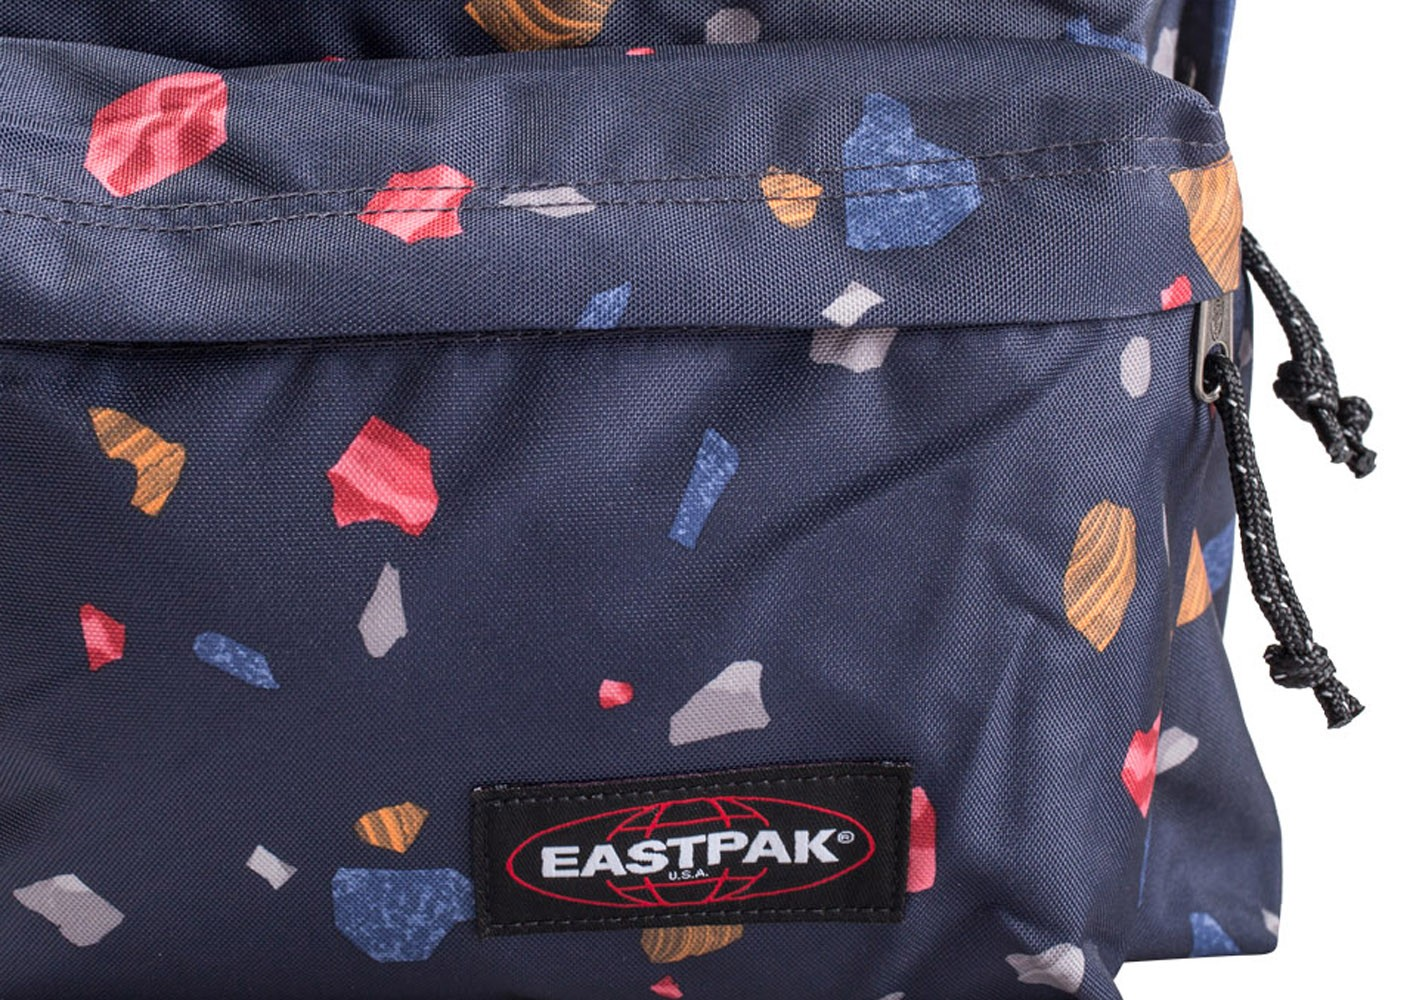 Eastpak Sac à dos Padded Pak'r Terro Night bleu Sacs &